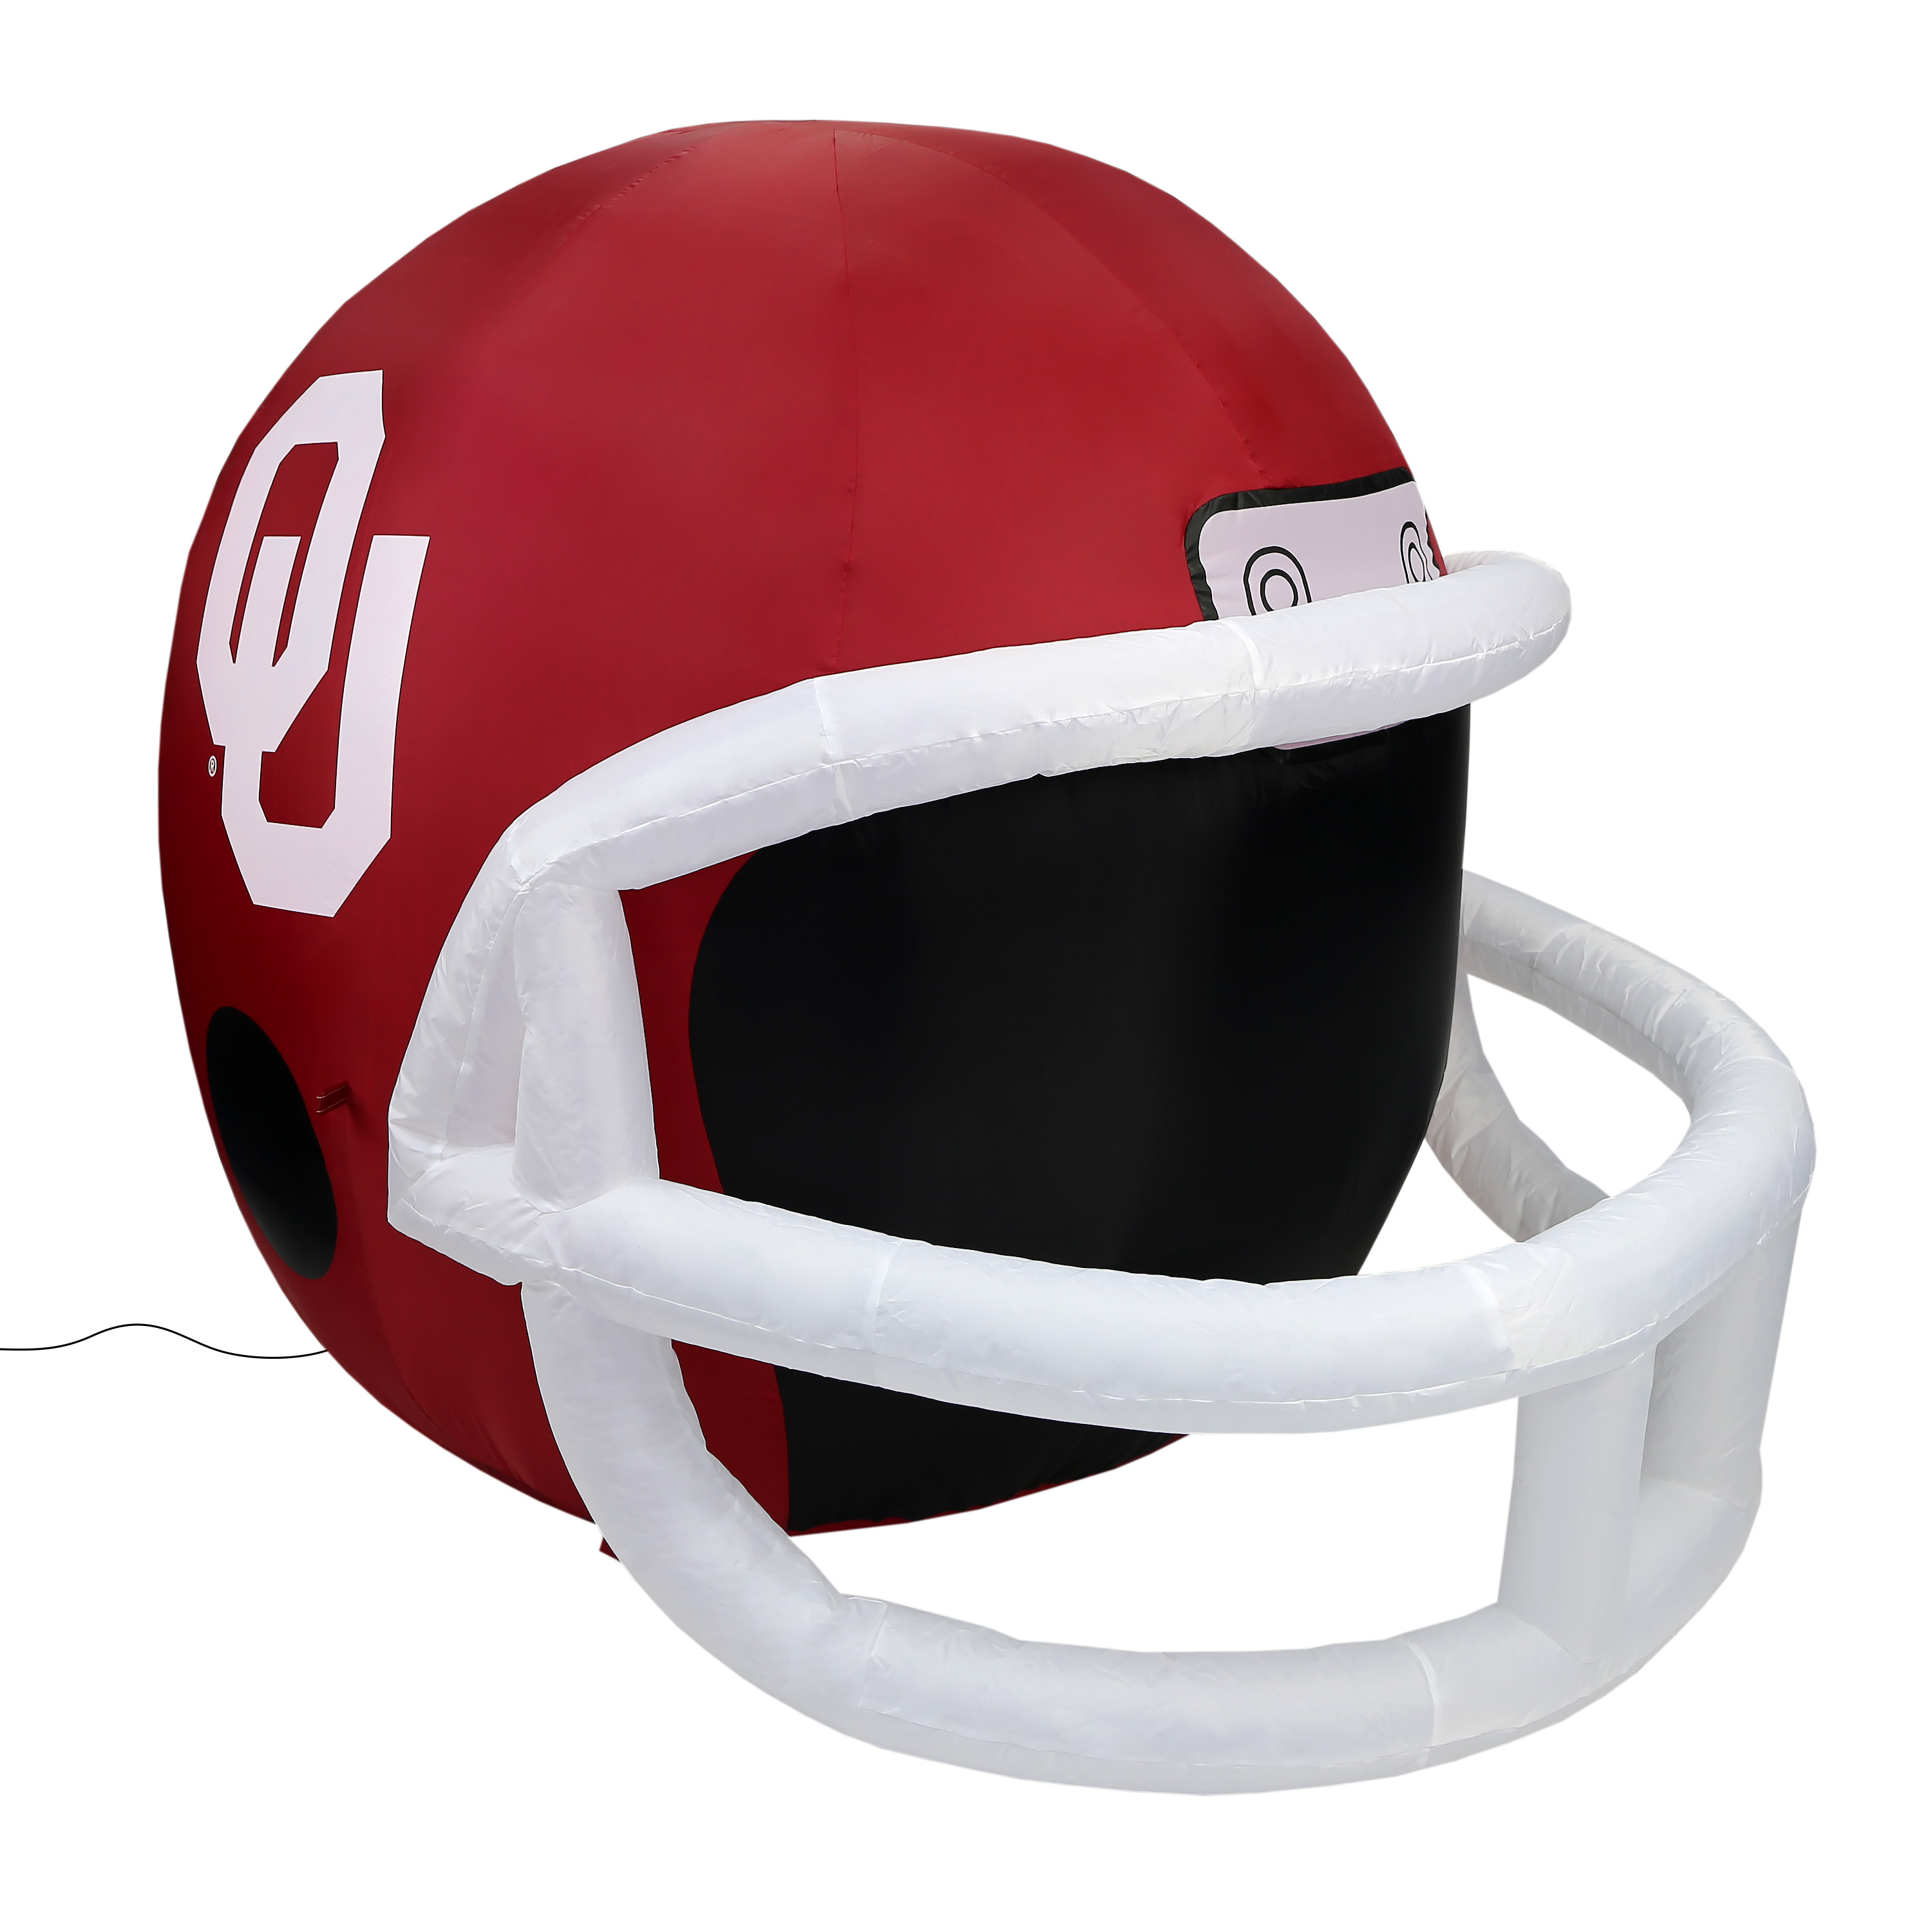 NCAA Oklahoma Sooners Team Inflatable Lawn Helmet, Red, One Size